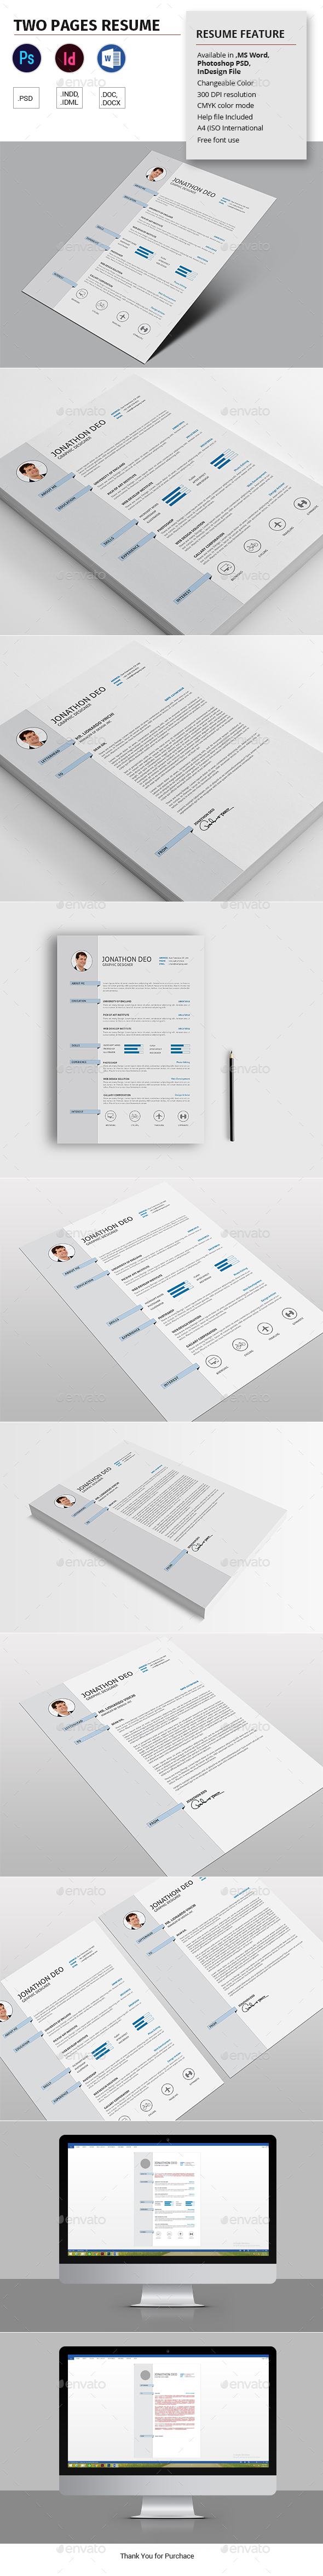 Two Pages Resume - Resumes Stationery